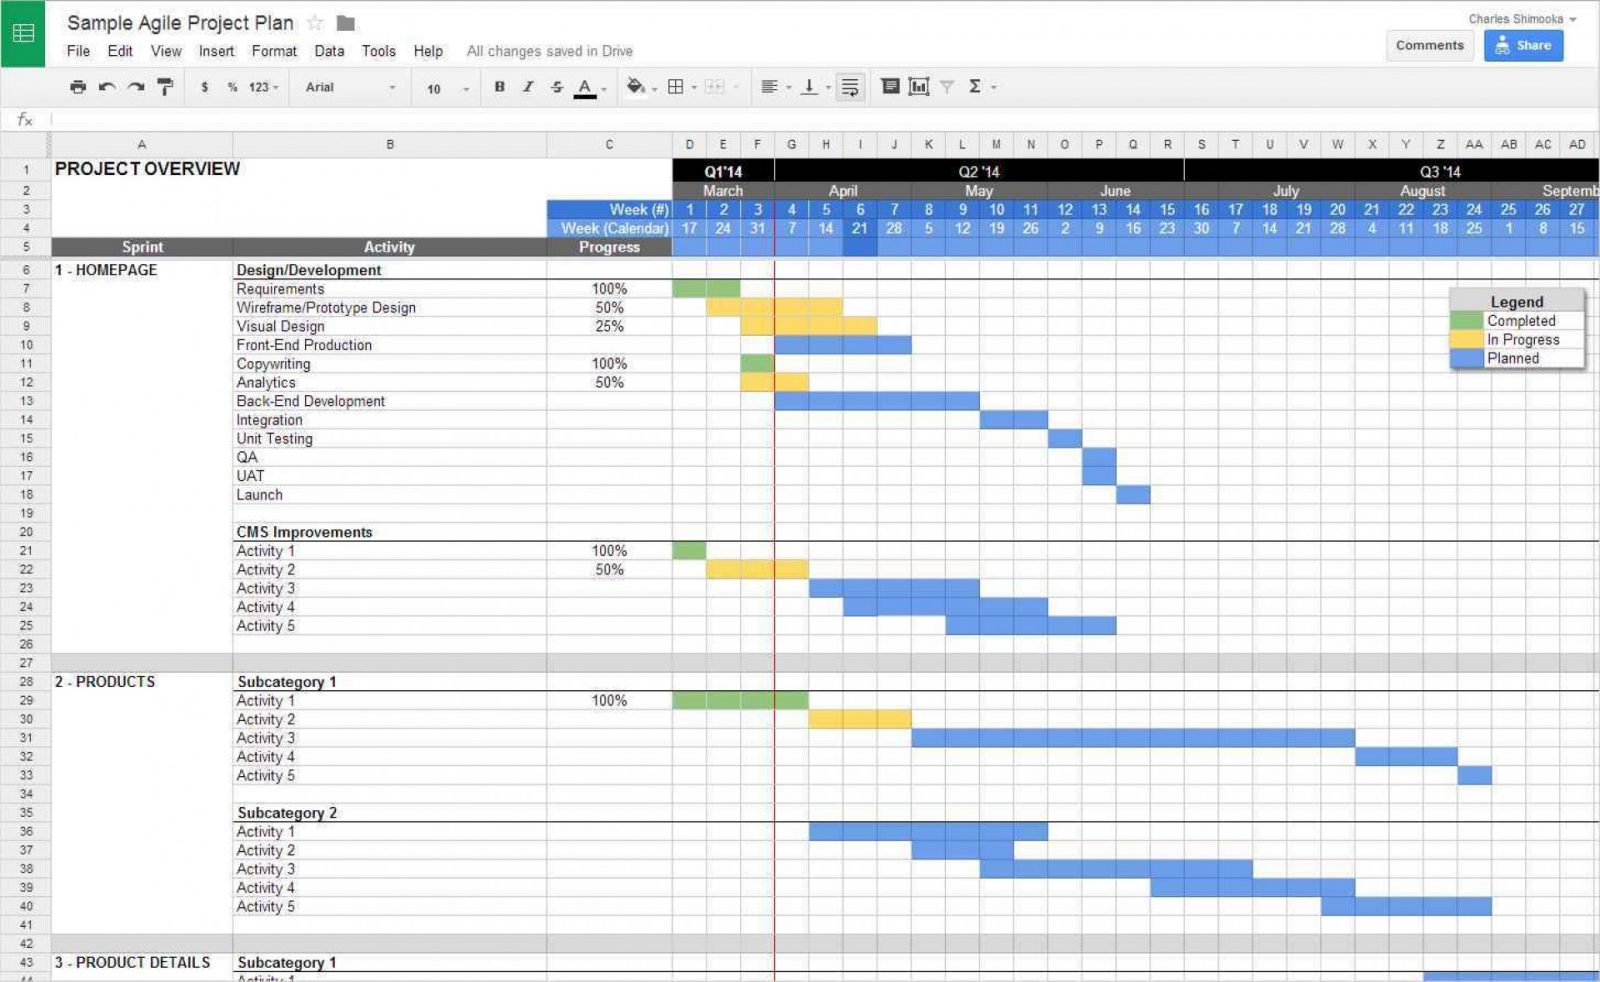 Workloadysis Excel Template